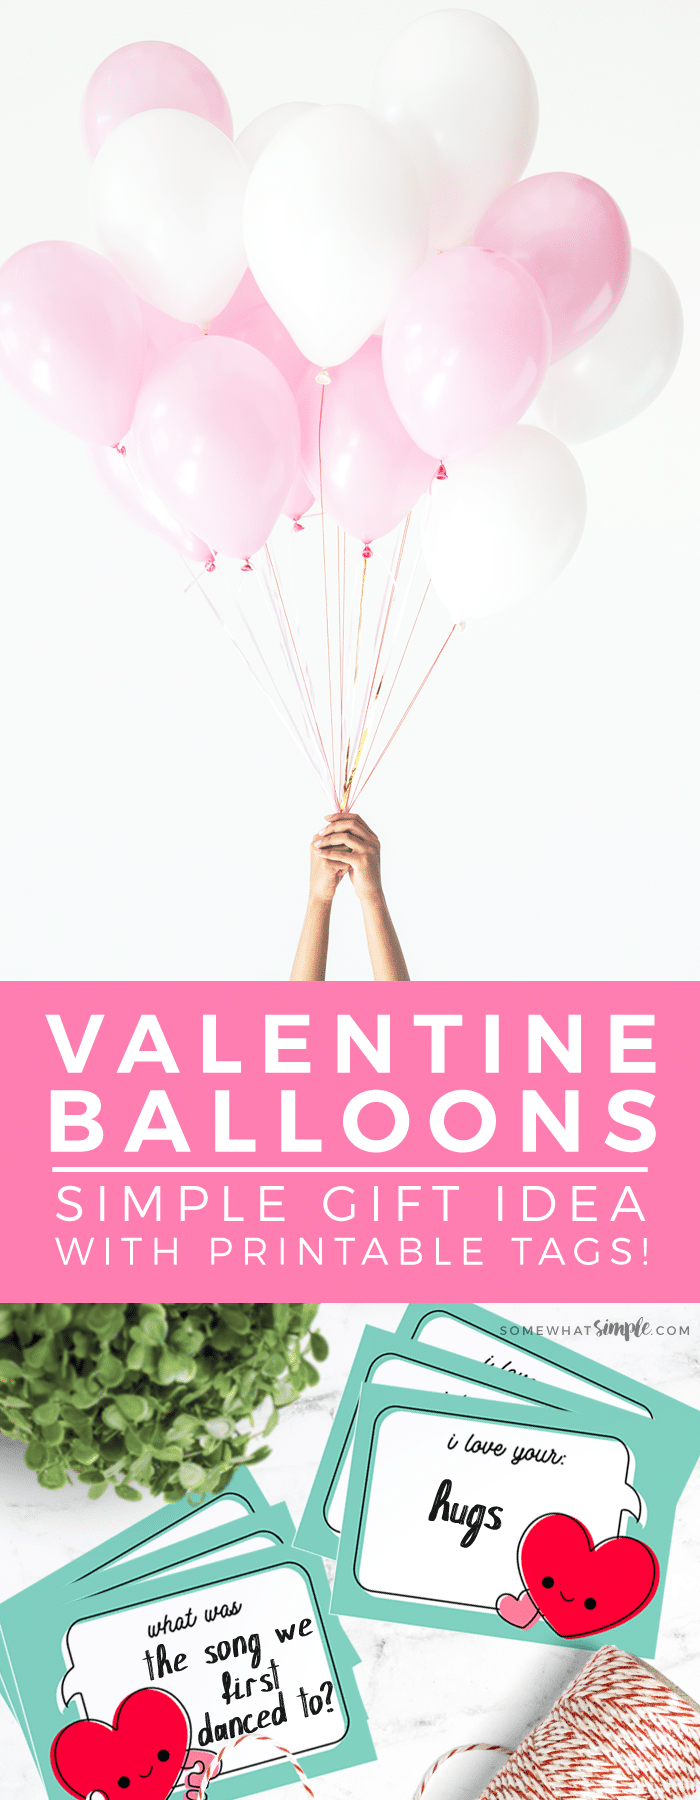 Looking for some quick and easy Valentine's Day gifts? Here is one that is sure to get a smile from the recipient, and it couldn't be any easier to put together!